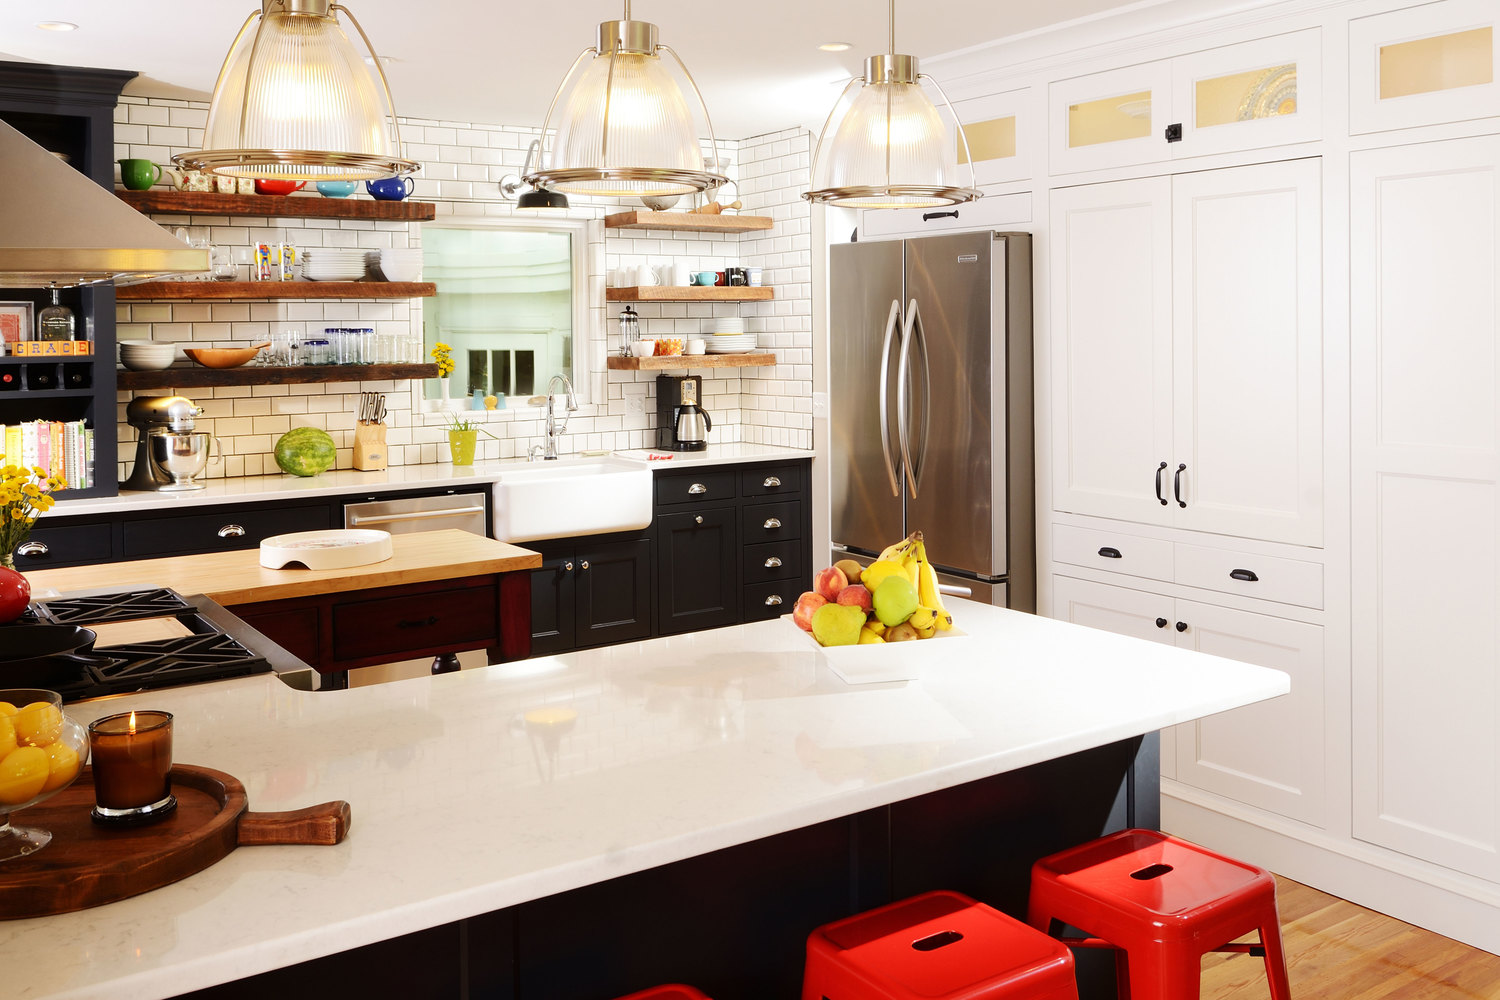 cabinet concepts by design obelisk home interior design home dCcor kitchen kingsbury